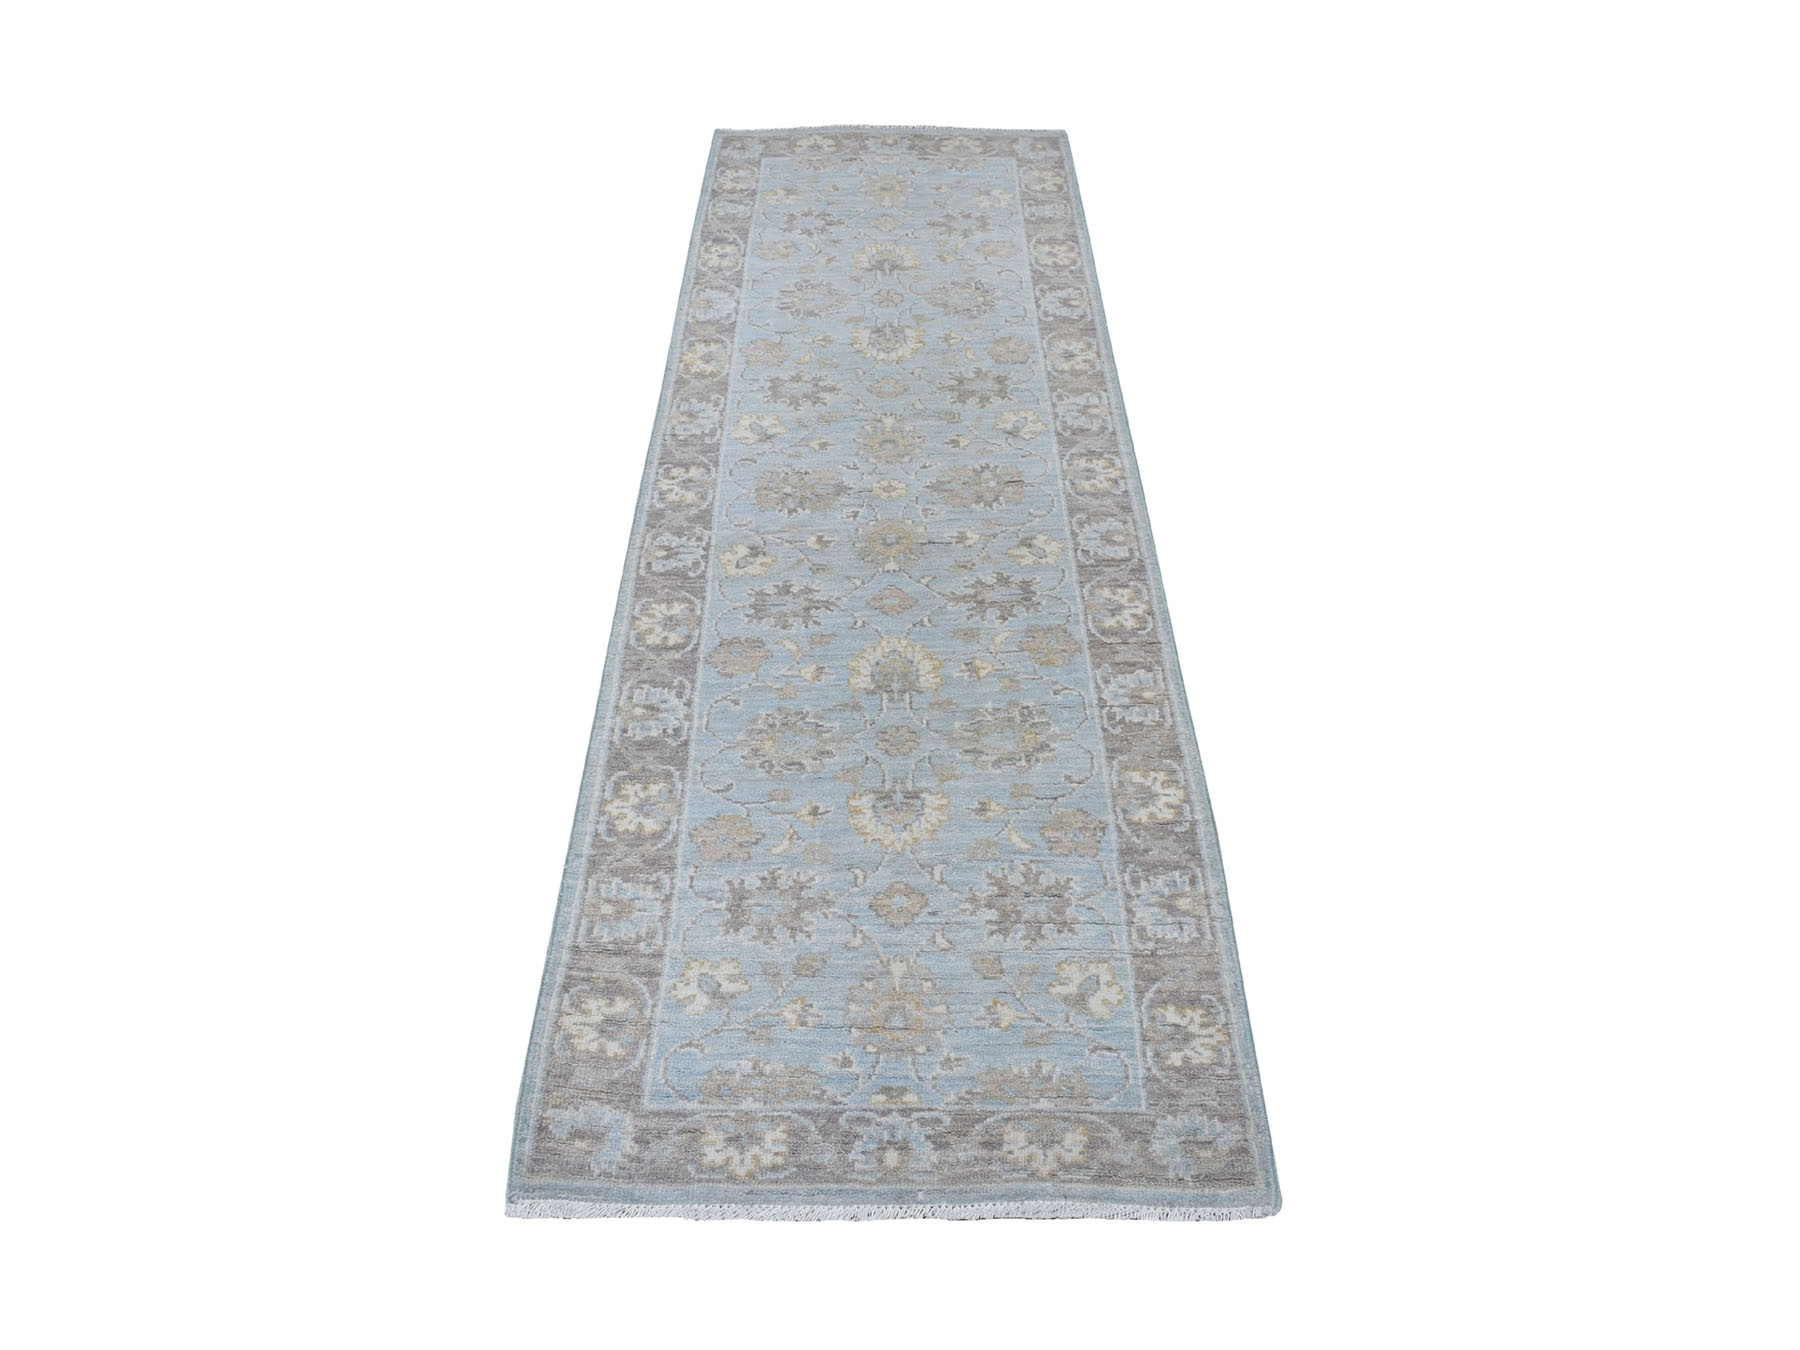 Traditional Wool Hand-Knotted Area Rug 2'7